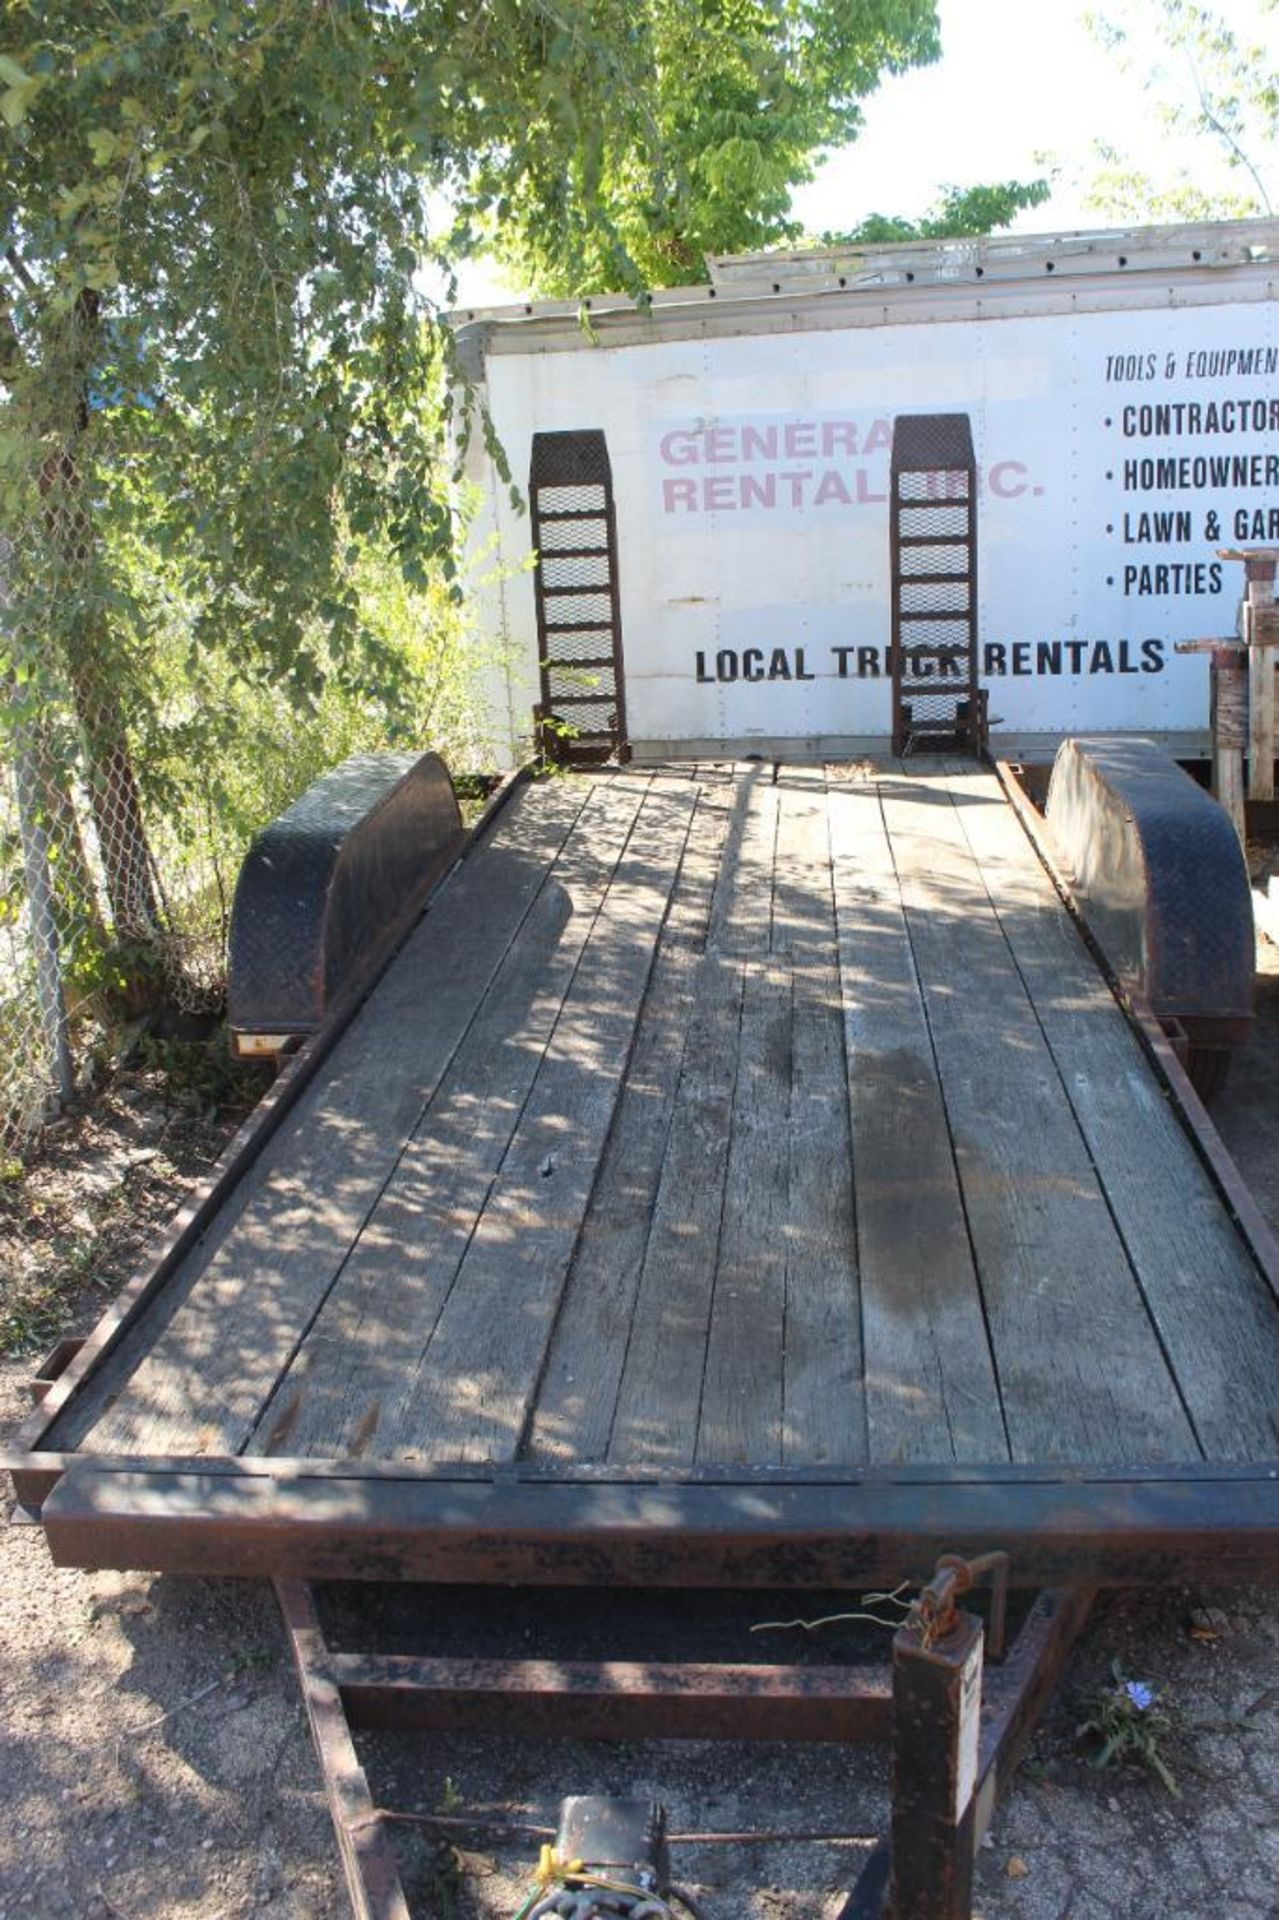 2005 Cronkhite Model 2200EHSA 6 x 16 Flat Bed Dual Axel Trailer with Adjustable Ramps - Image 2 of 3